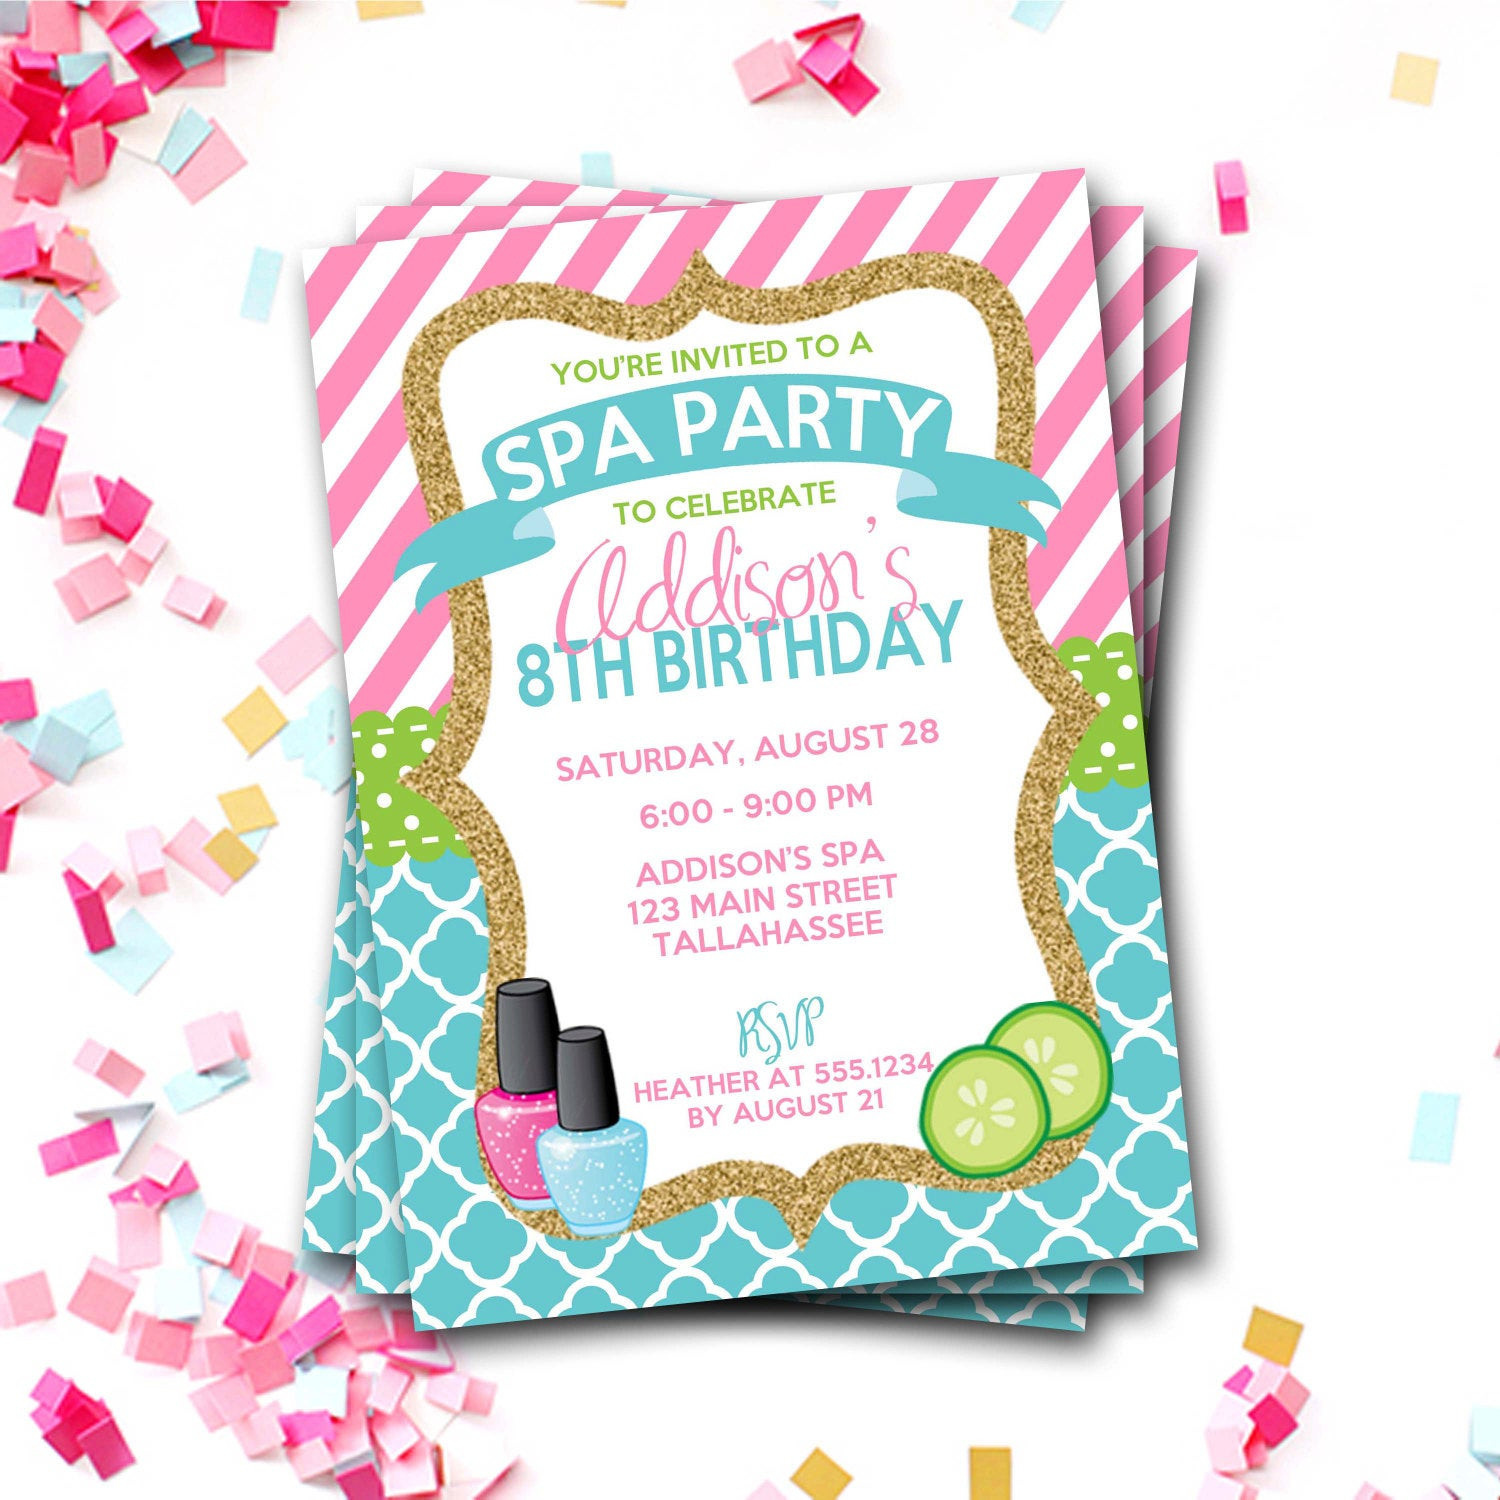 Best ideas about Spa Birthday Invitations . Save or Pin Spa Birthday Invitation Spa Party Invitation Sleepover Now.